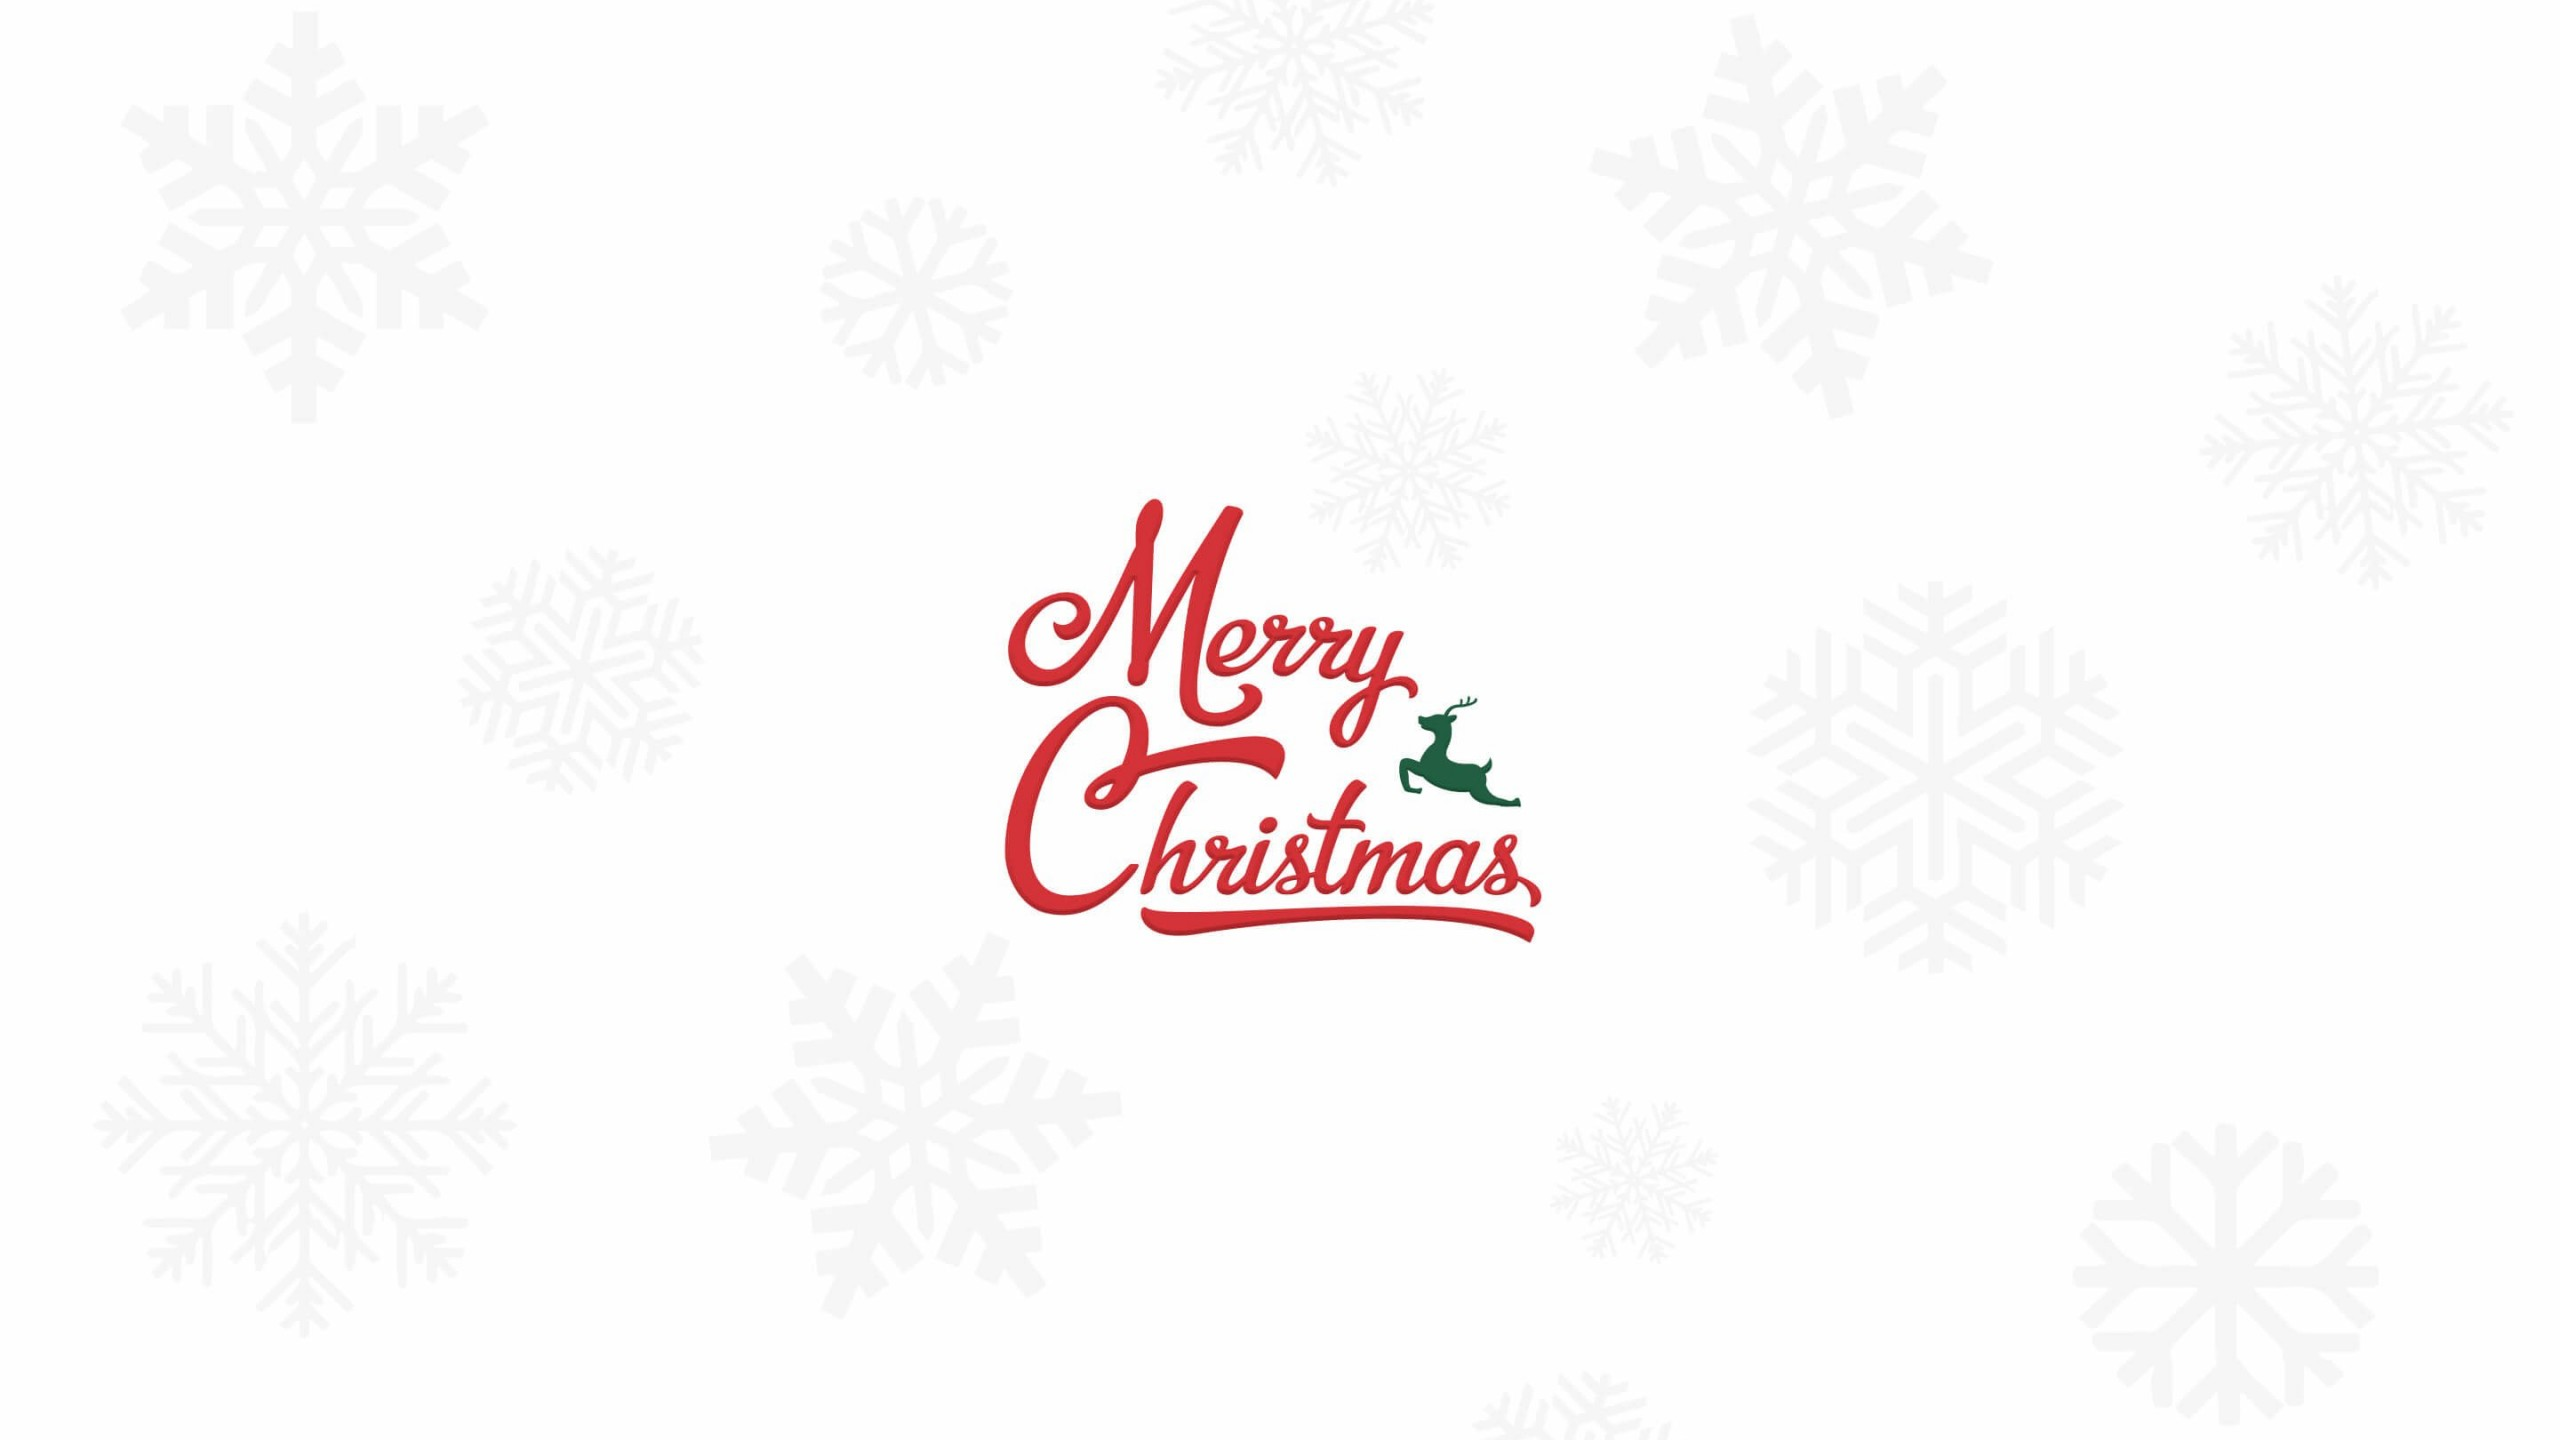 Merry Christmas Wallpaper for Social Media YouTube Channel Art